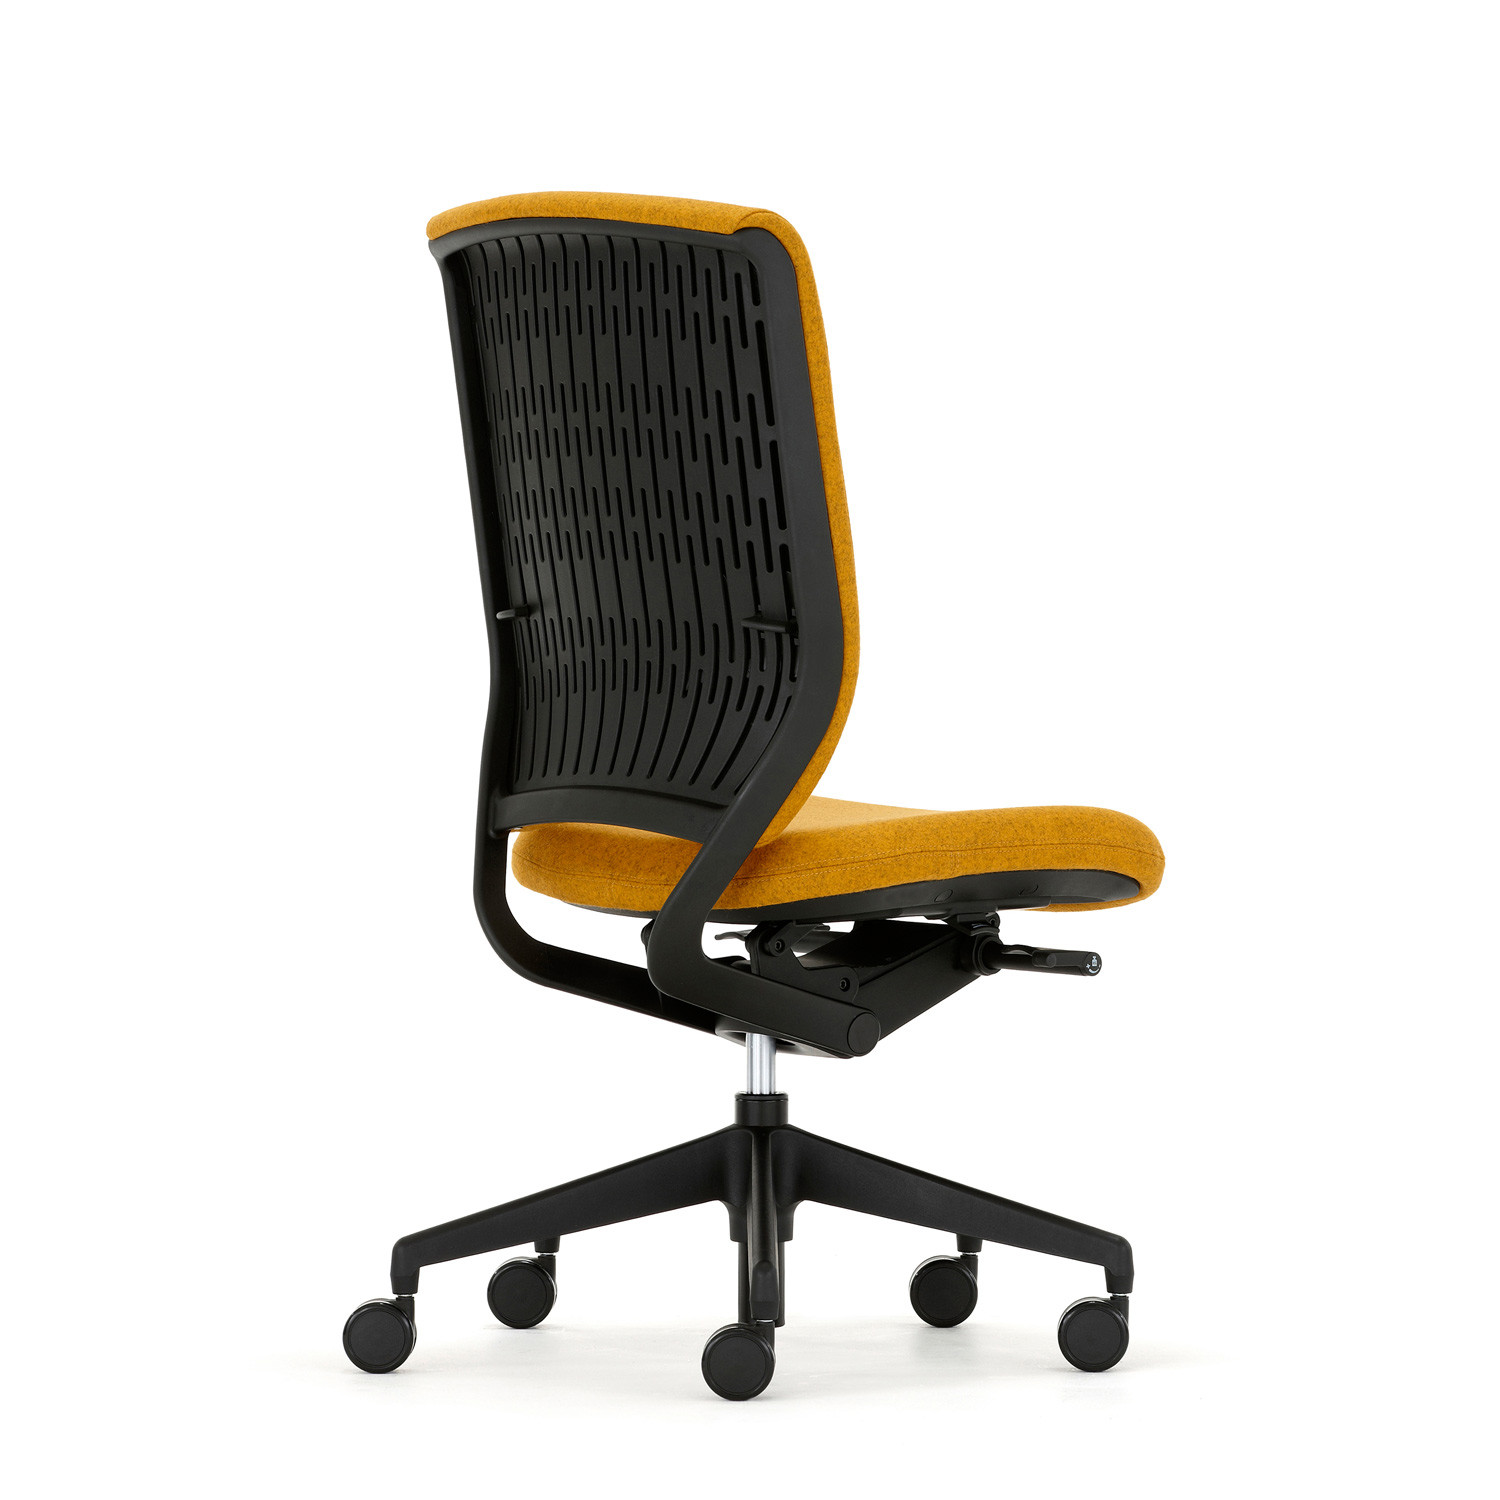 Evolve Mesh Office Chair from Senator